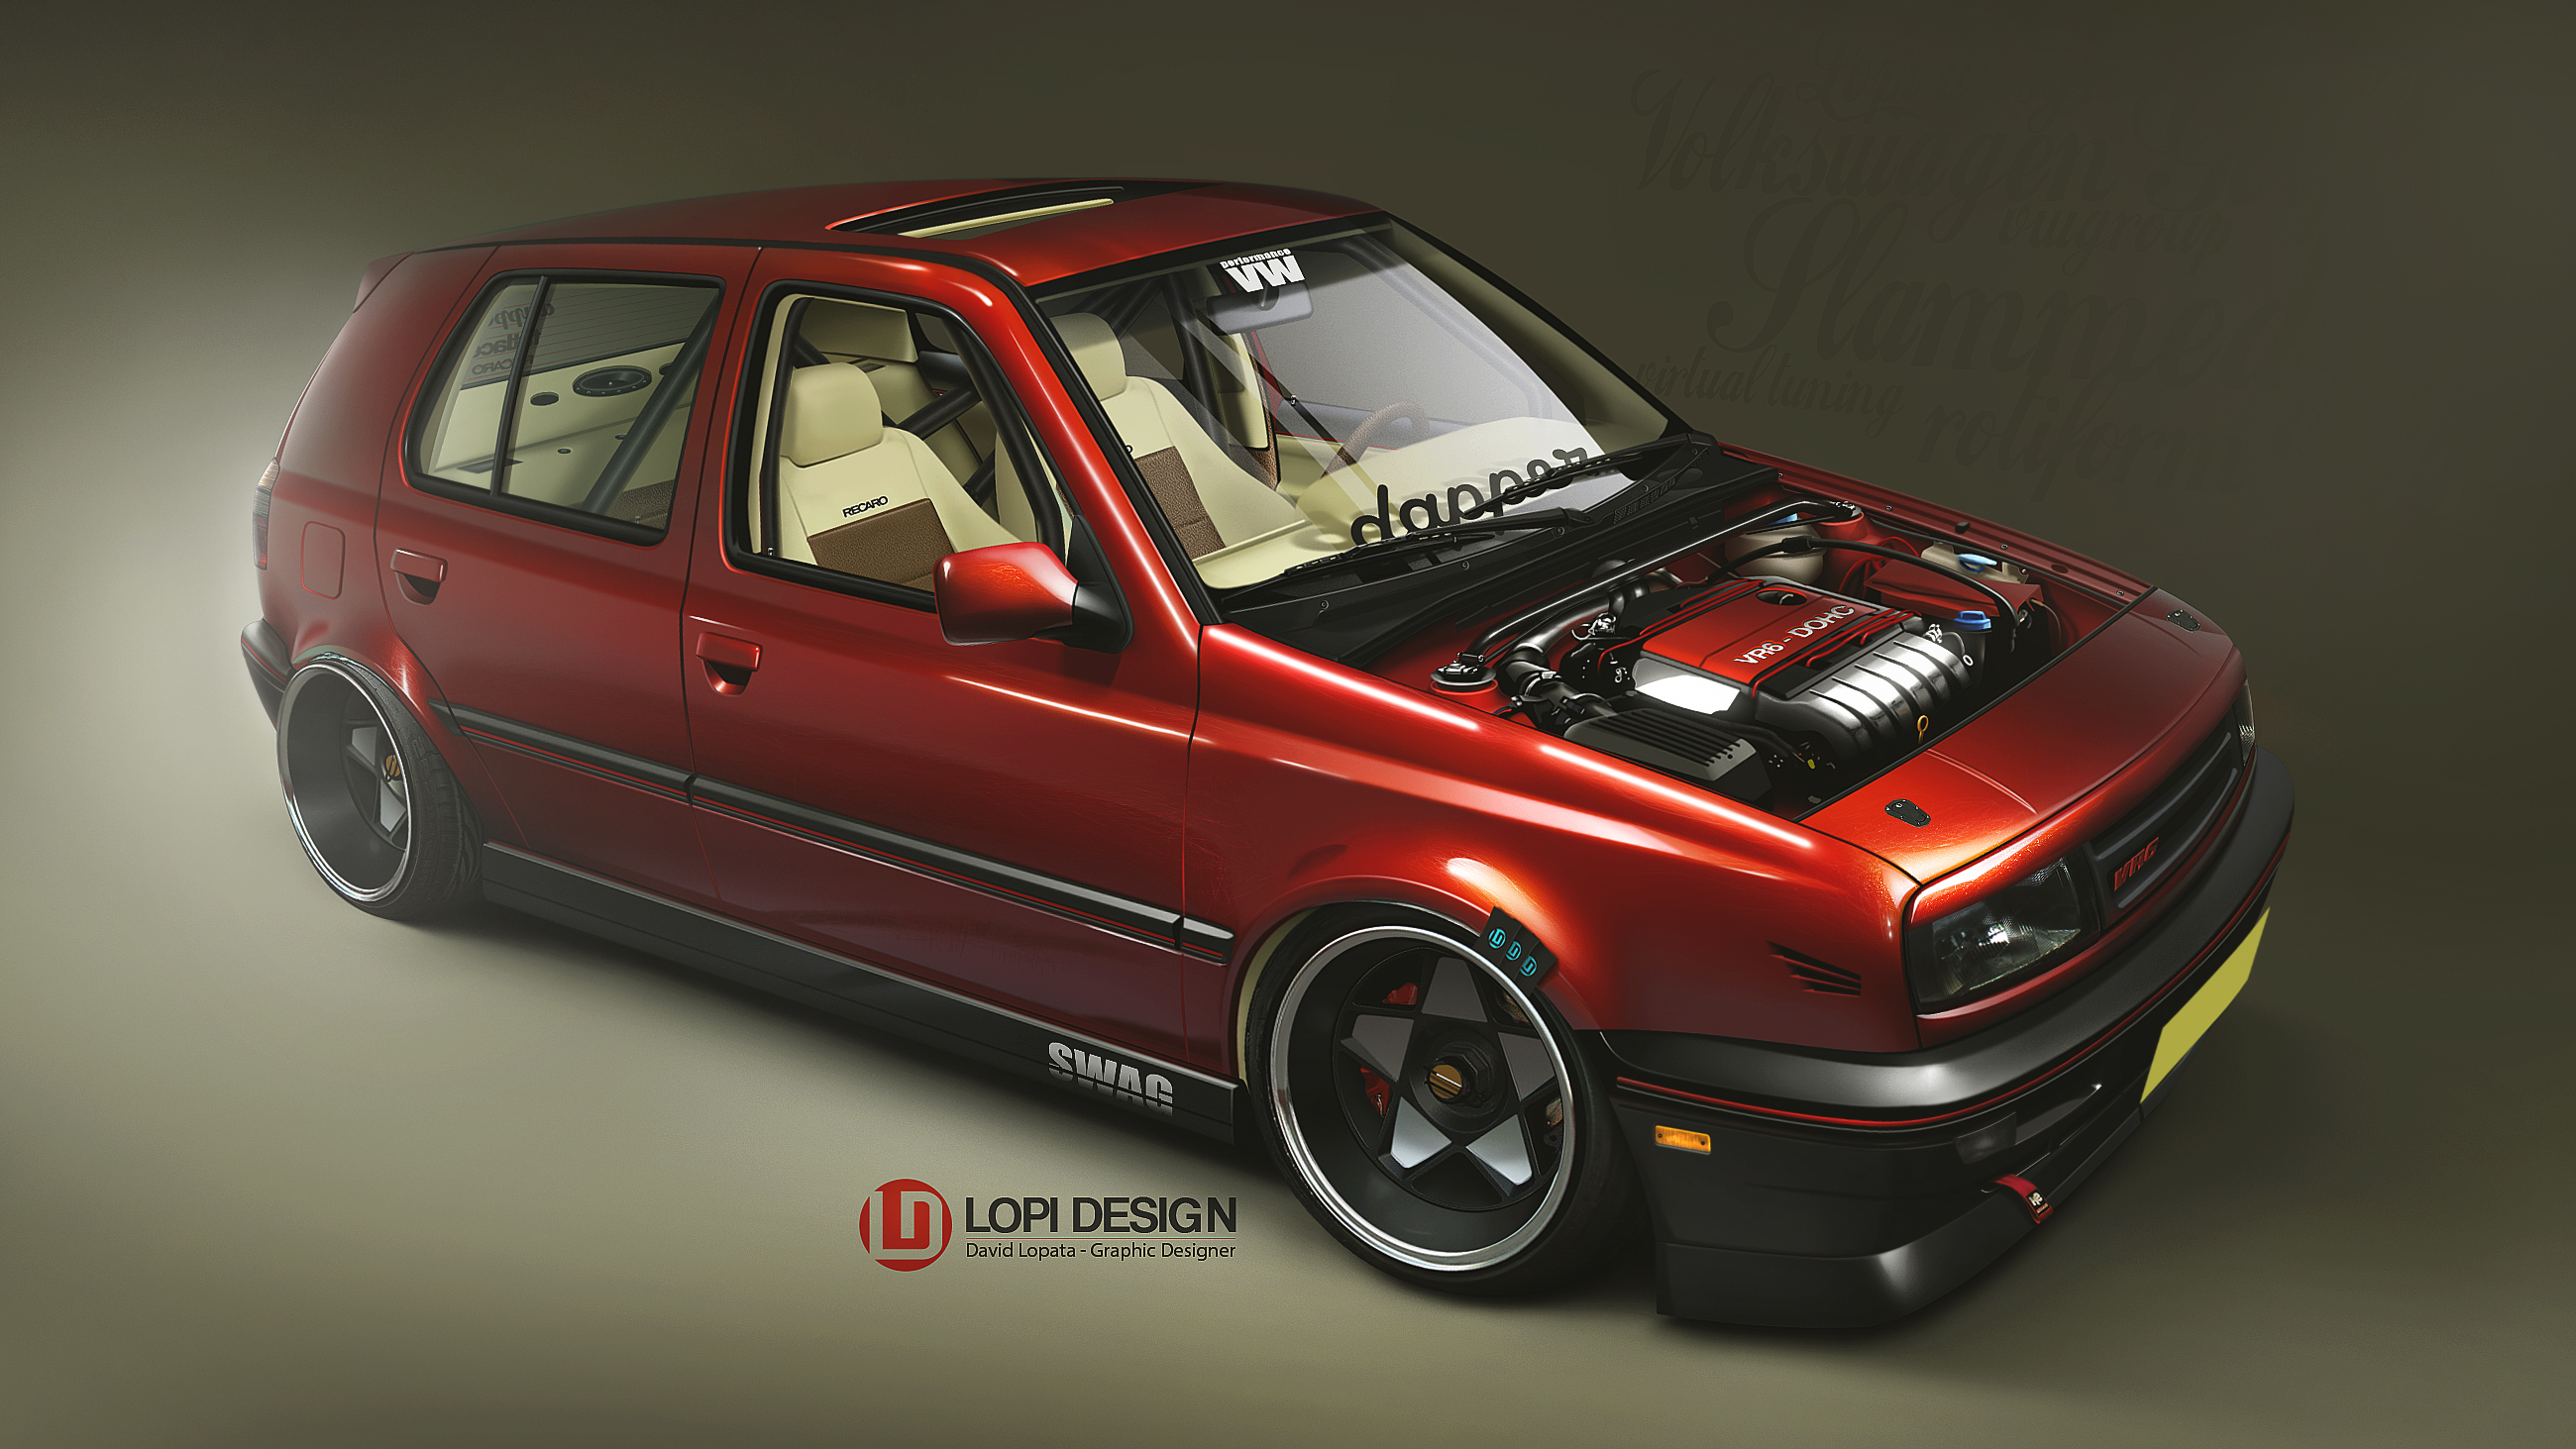 VW Golf MKIII dapper by Lopi-42 on DeviantArt Golf With Friends Free Download